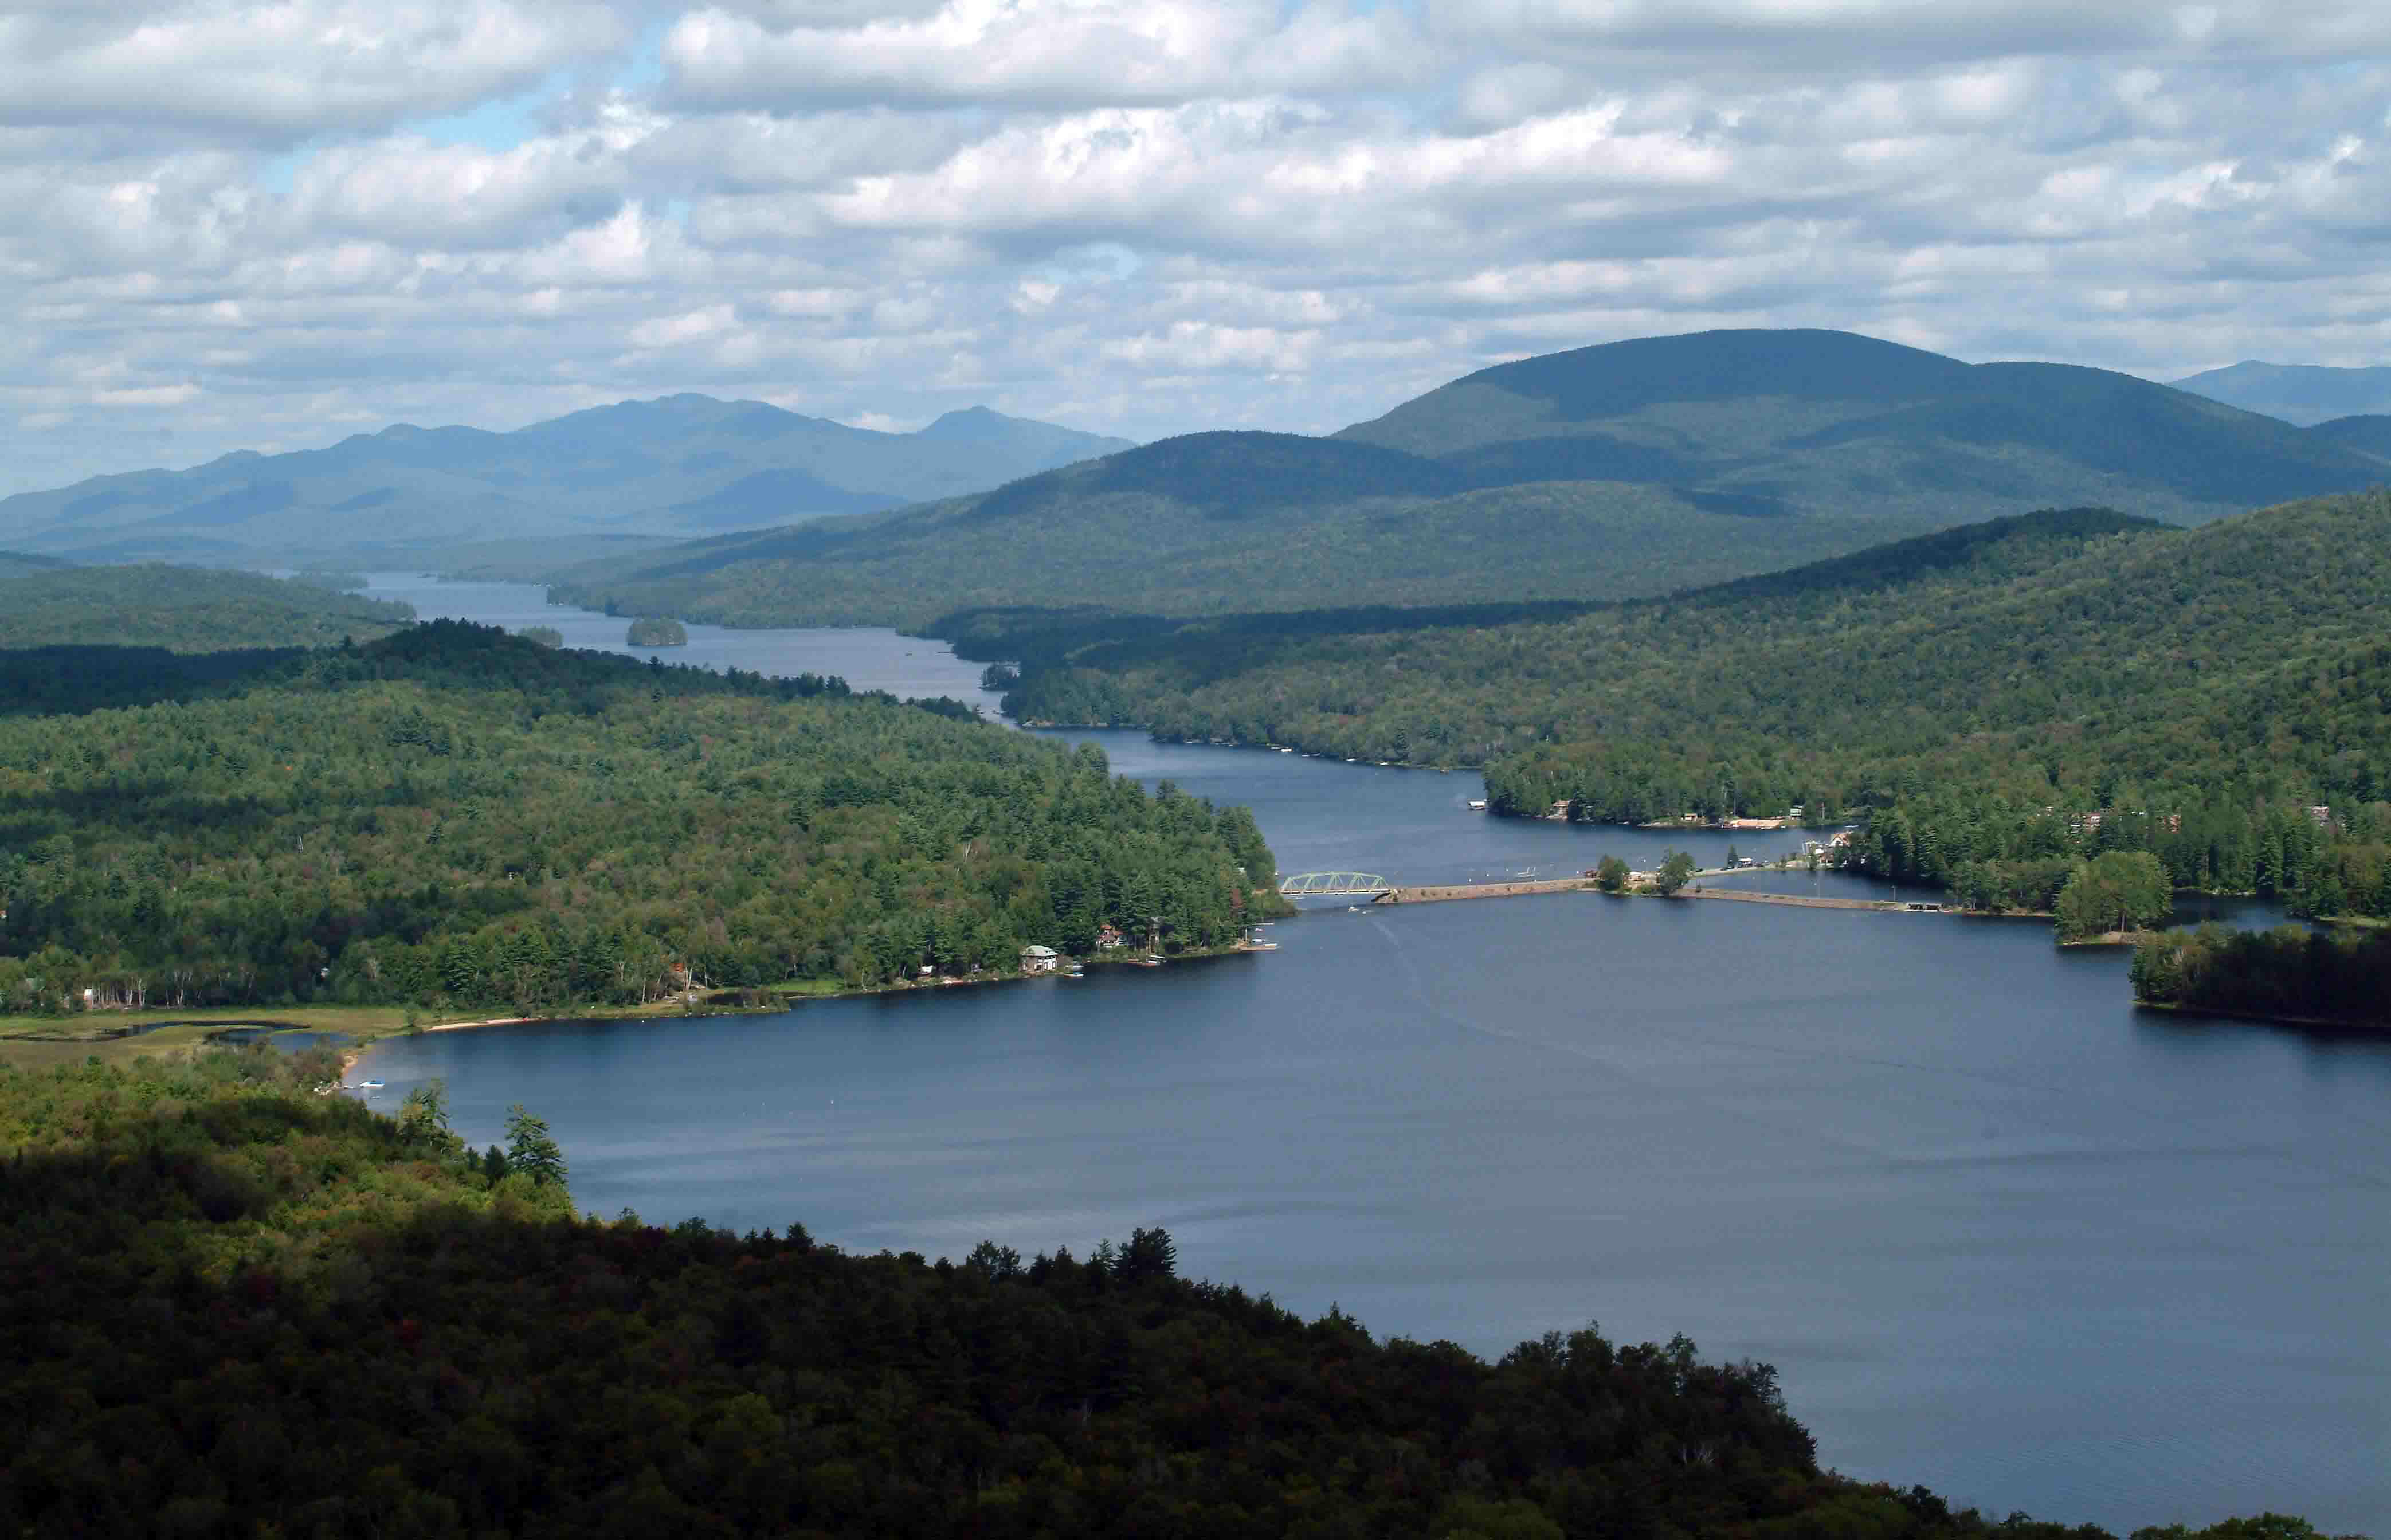 Jo O'meara, State Parks And New York On Pinterest